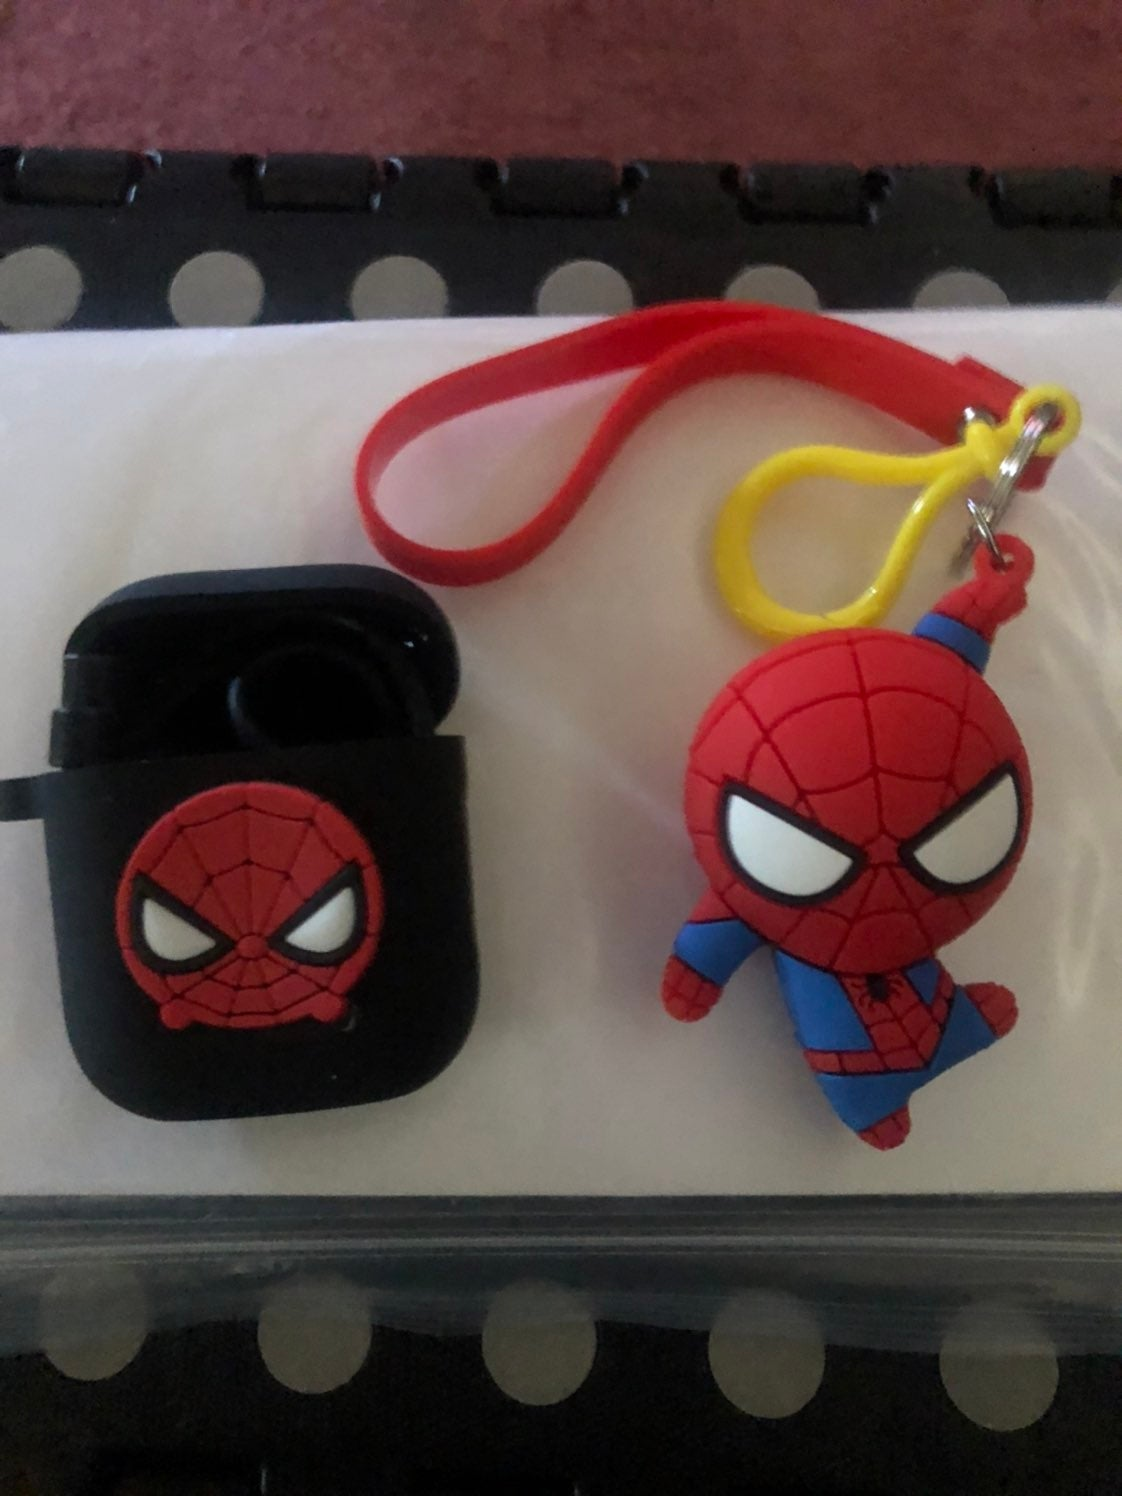 airpod case 1 and 2 spiderman